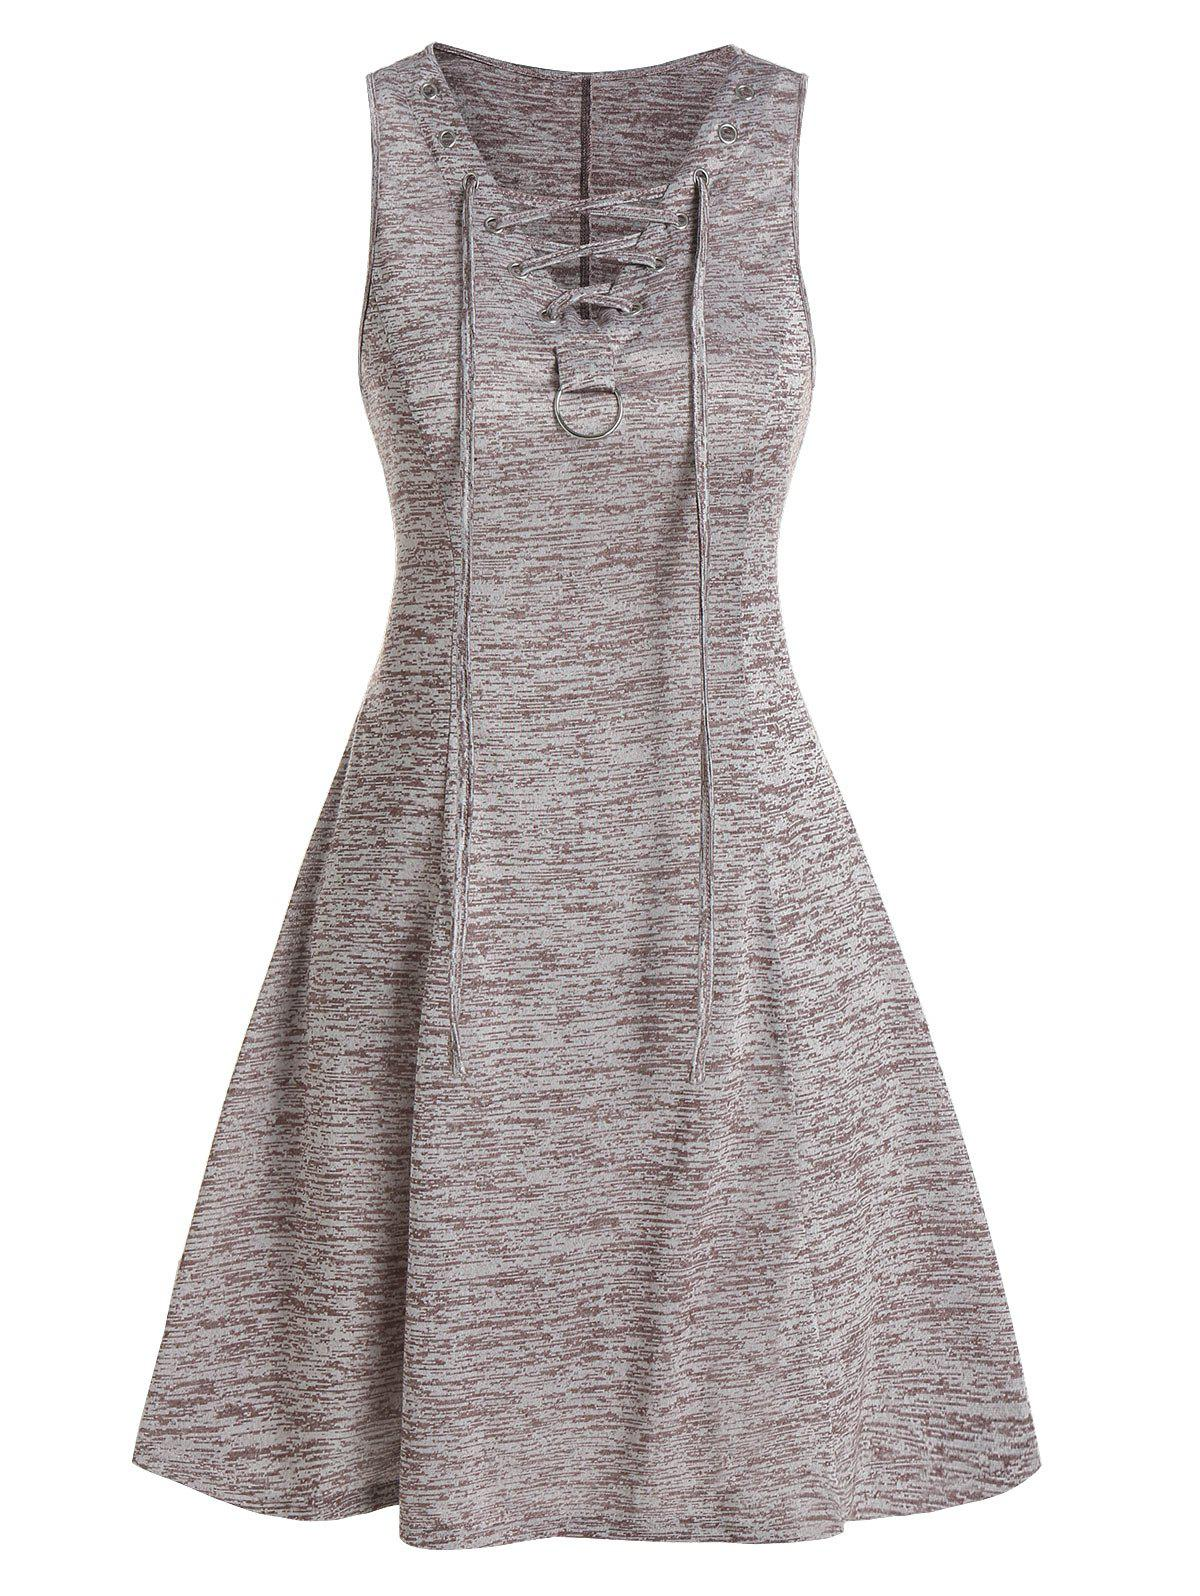 Lace Up Space Dye Fit And Flare Dress - COFFEE L